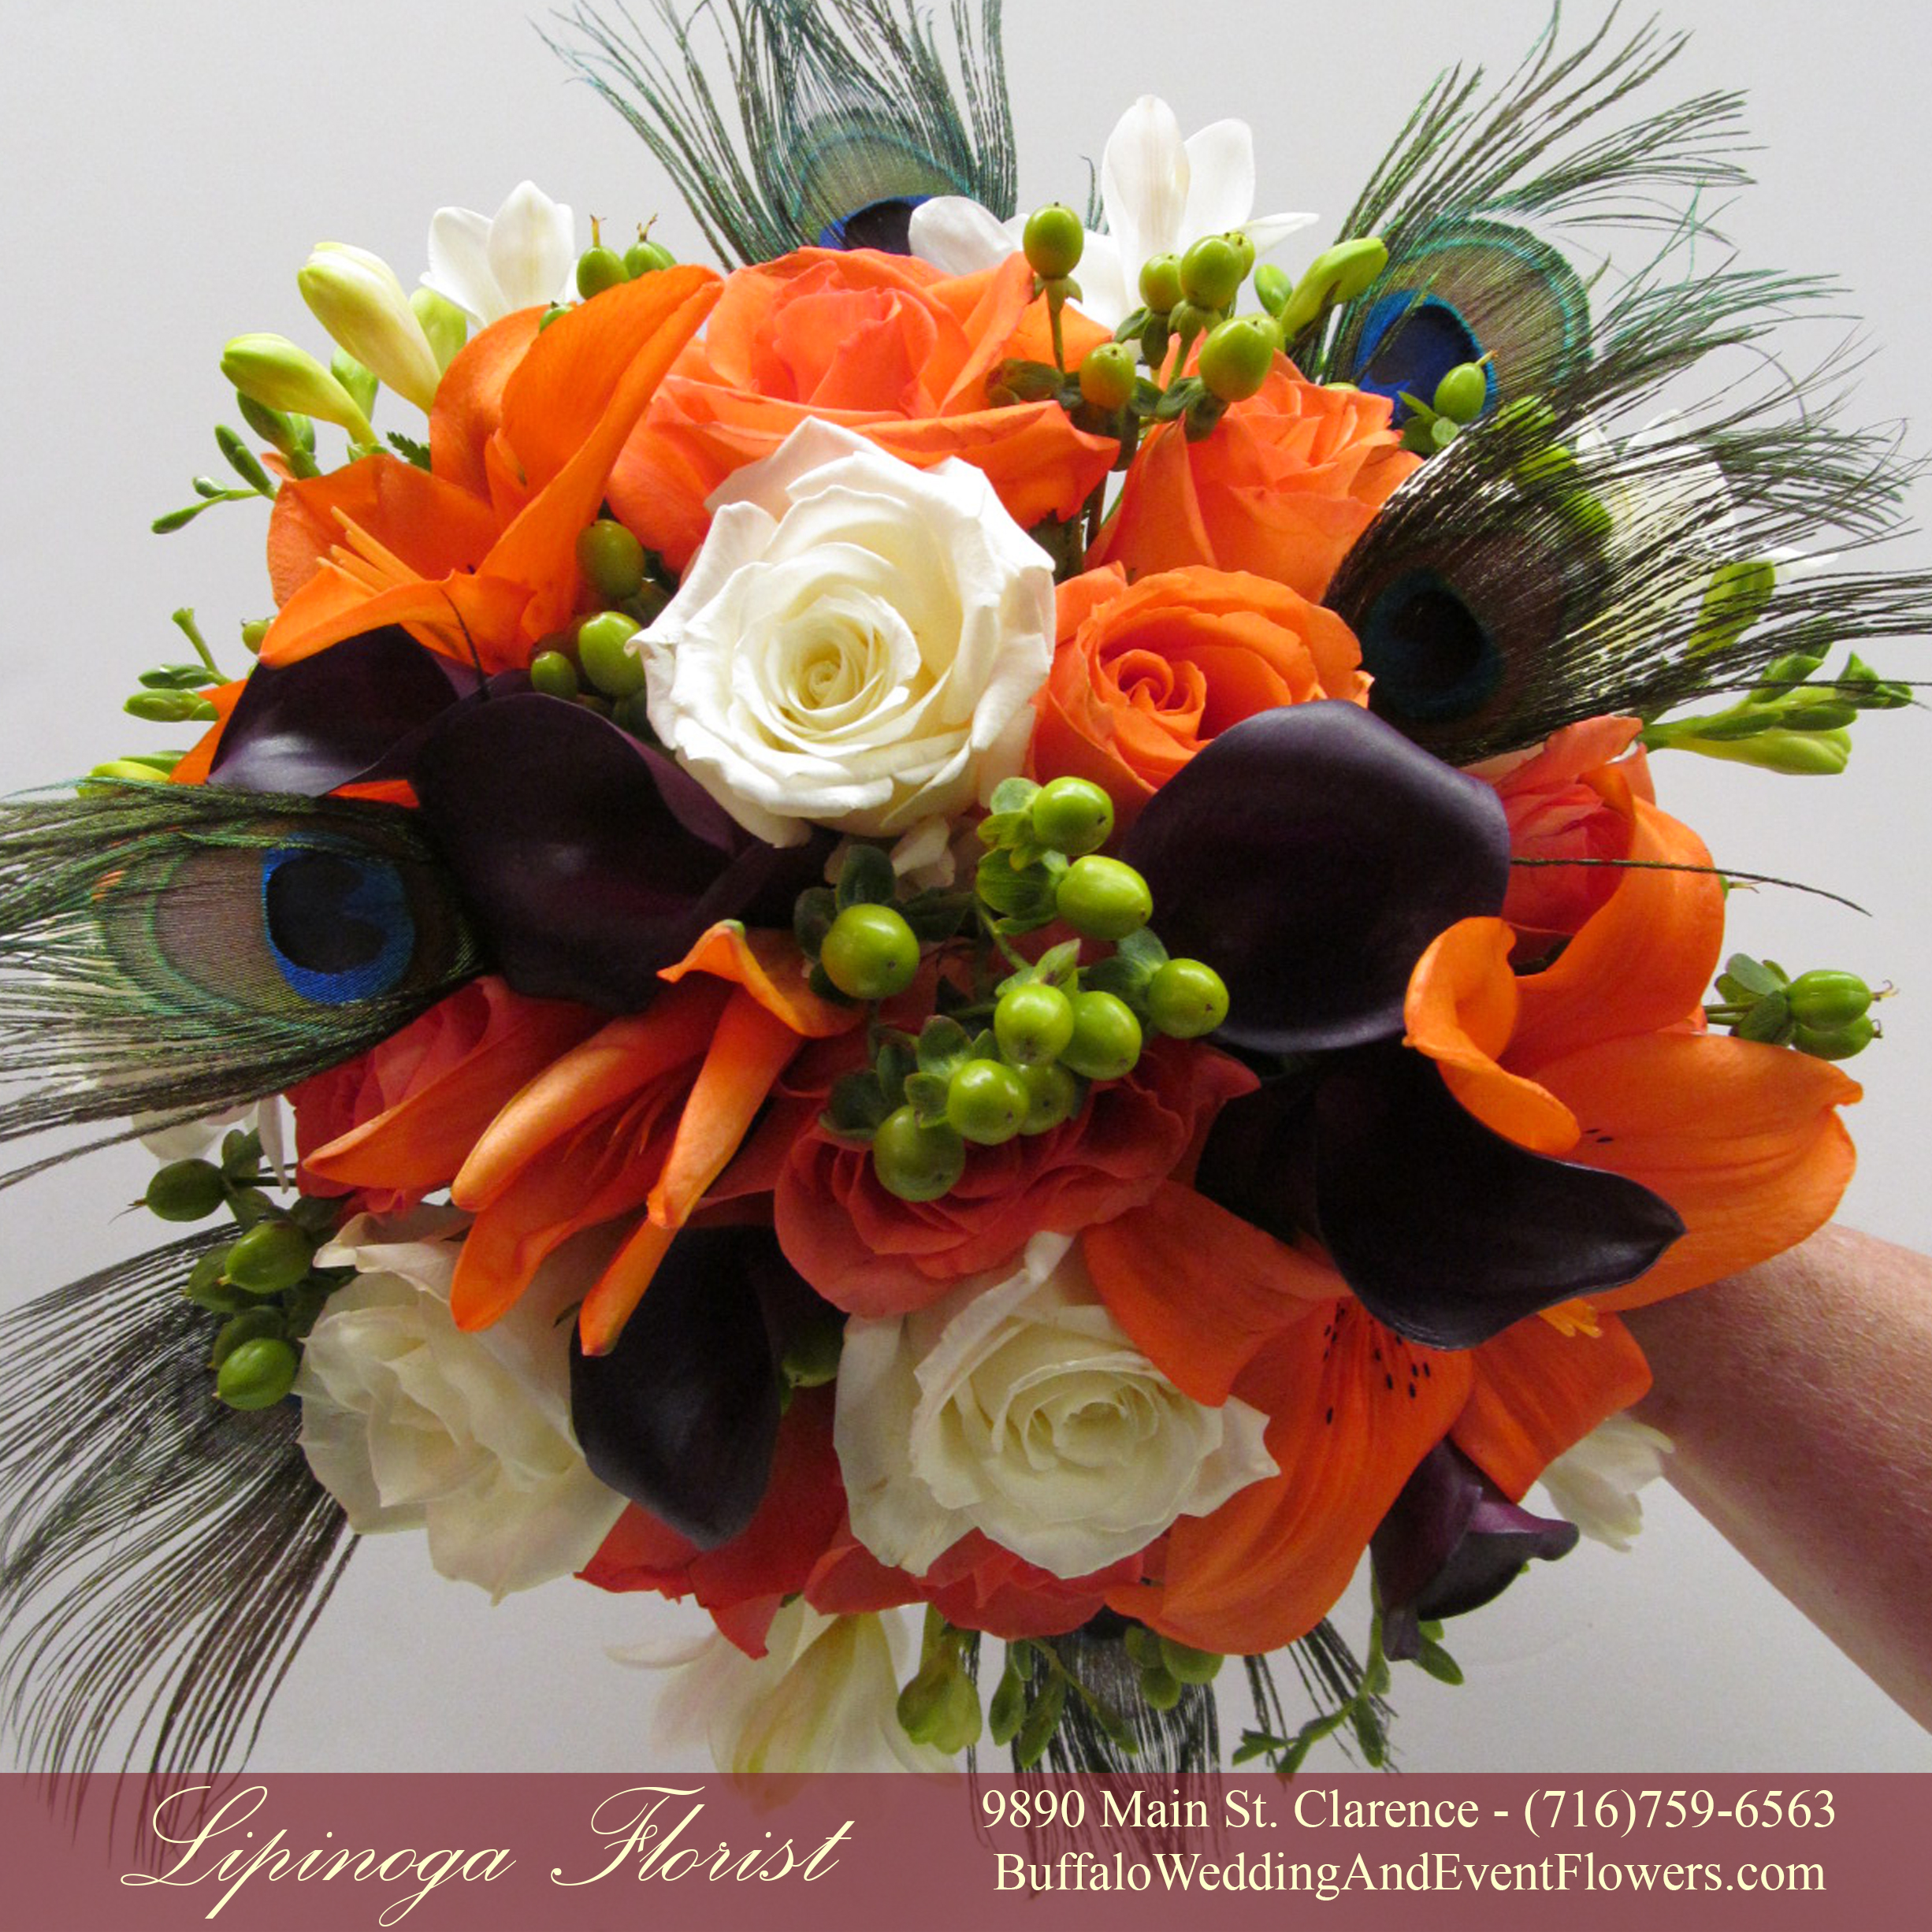 fall wedding flowers | Buffalo Wedding & Event Flowers by Lipinoga ...